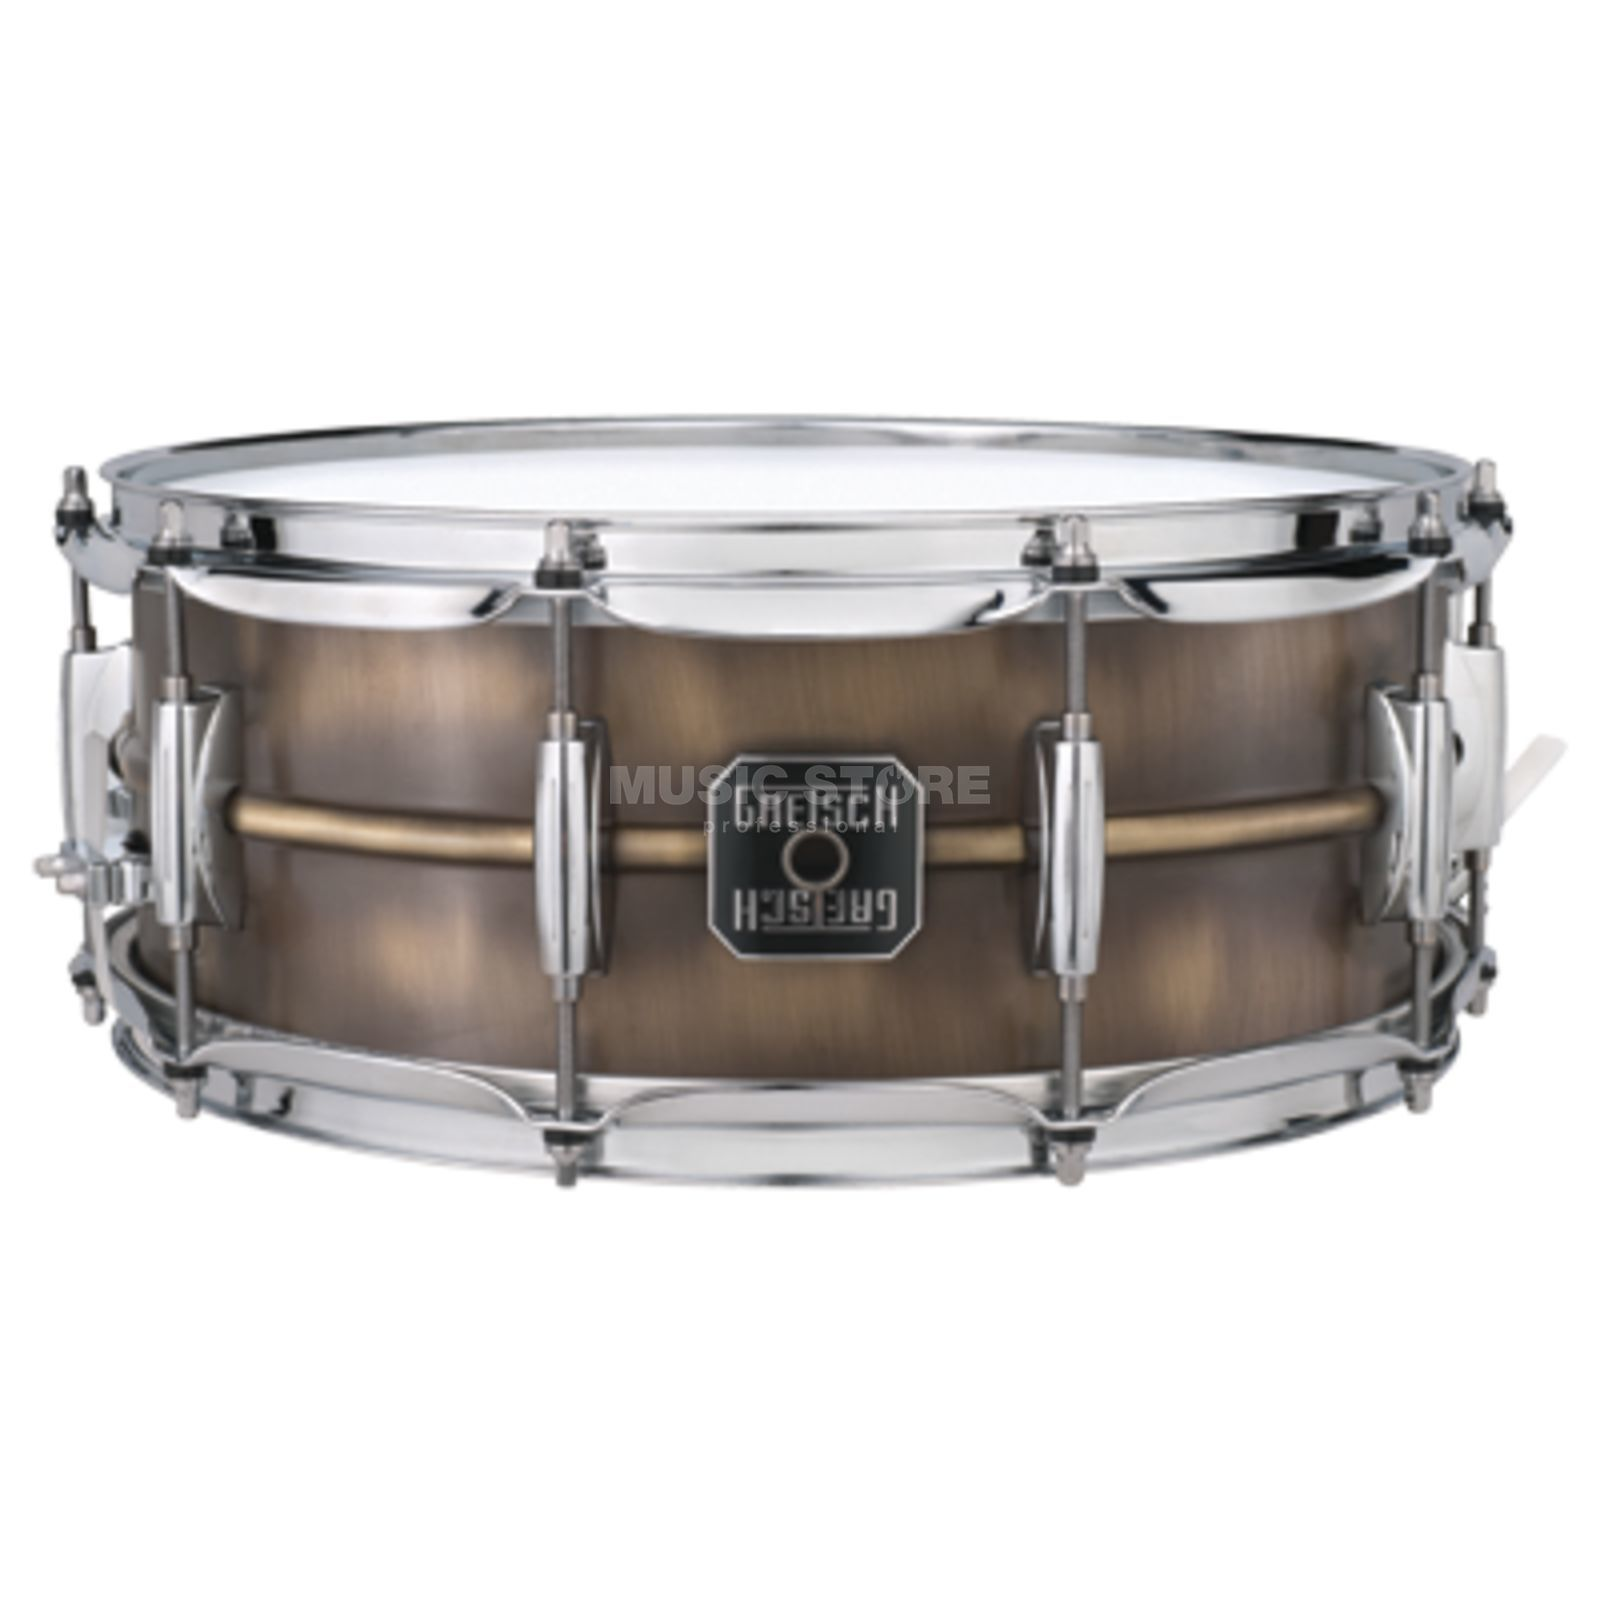 "Gretsch Full Range Snare S-6514-BB, 14""x6.5"", Brushed Brass Produktbillede"